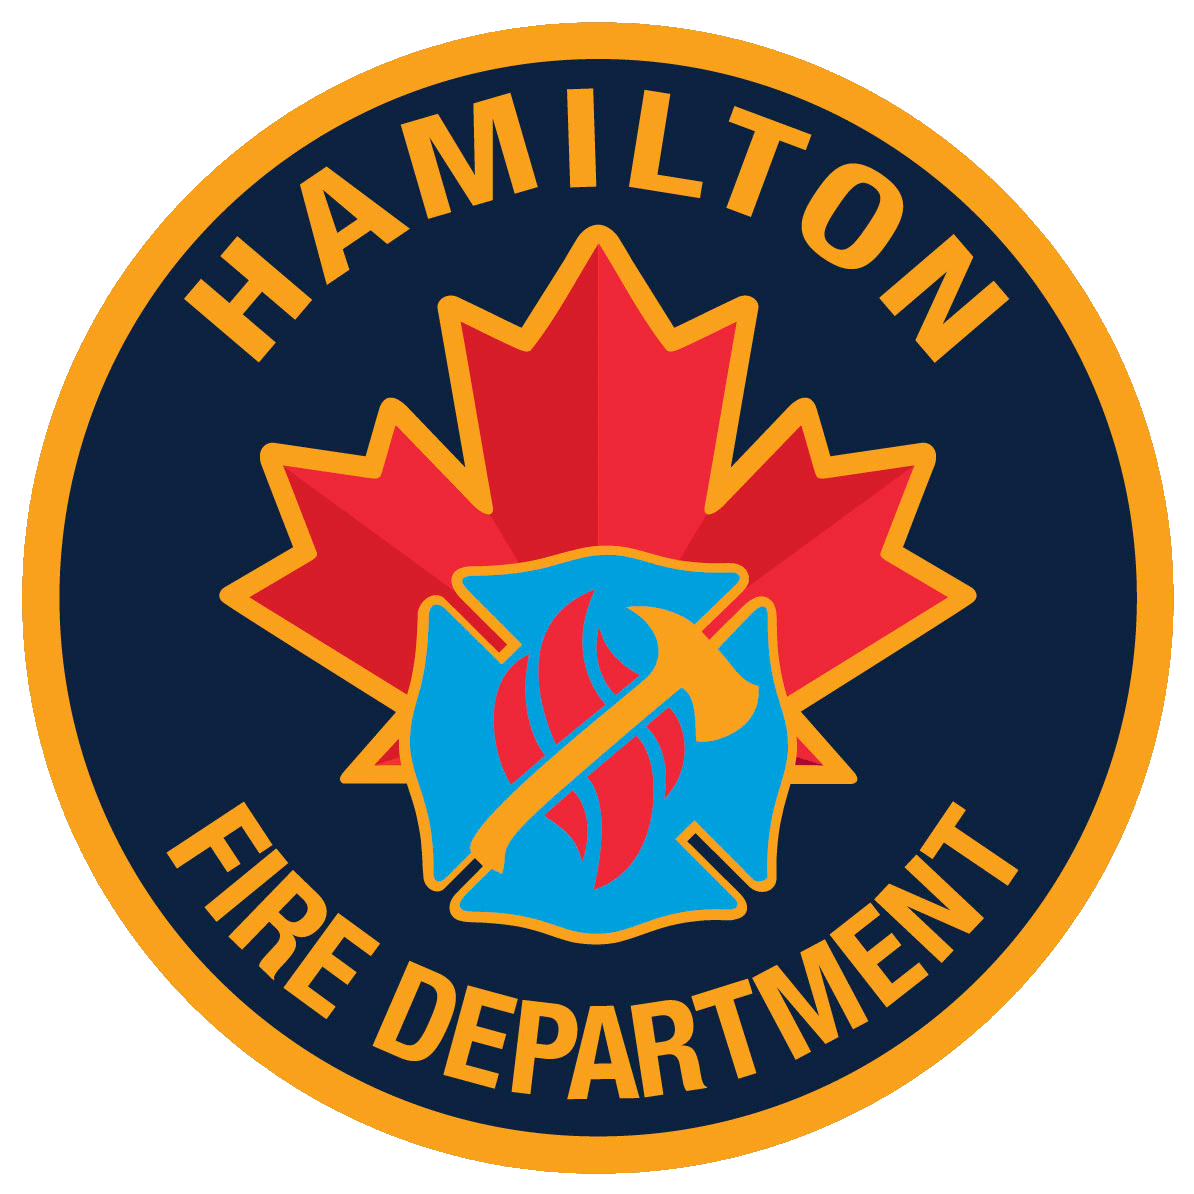 City of Hamilton Fire Department